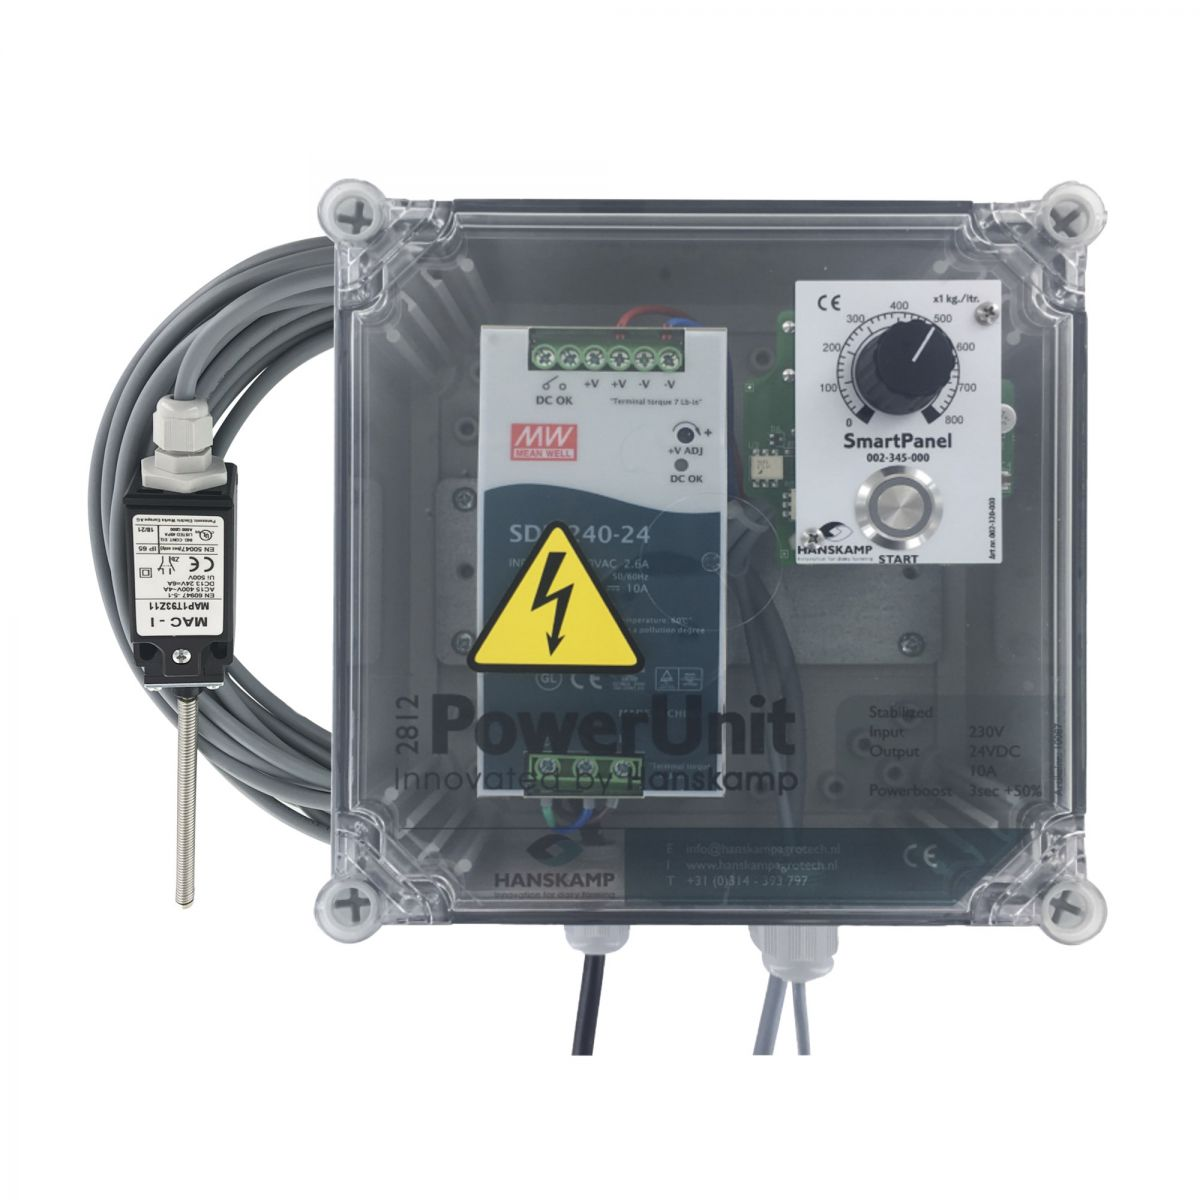 smartpanel in powerunit one type of food with limit switch 04 kg with graduated scale